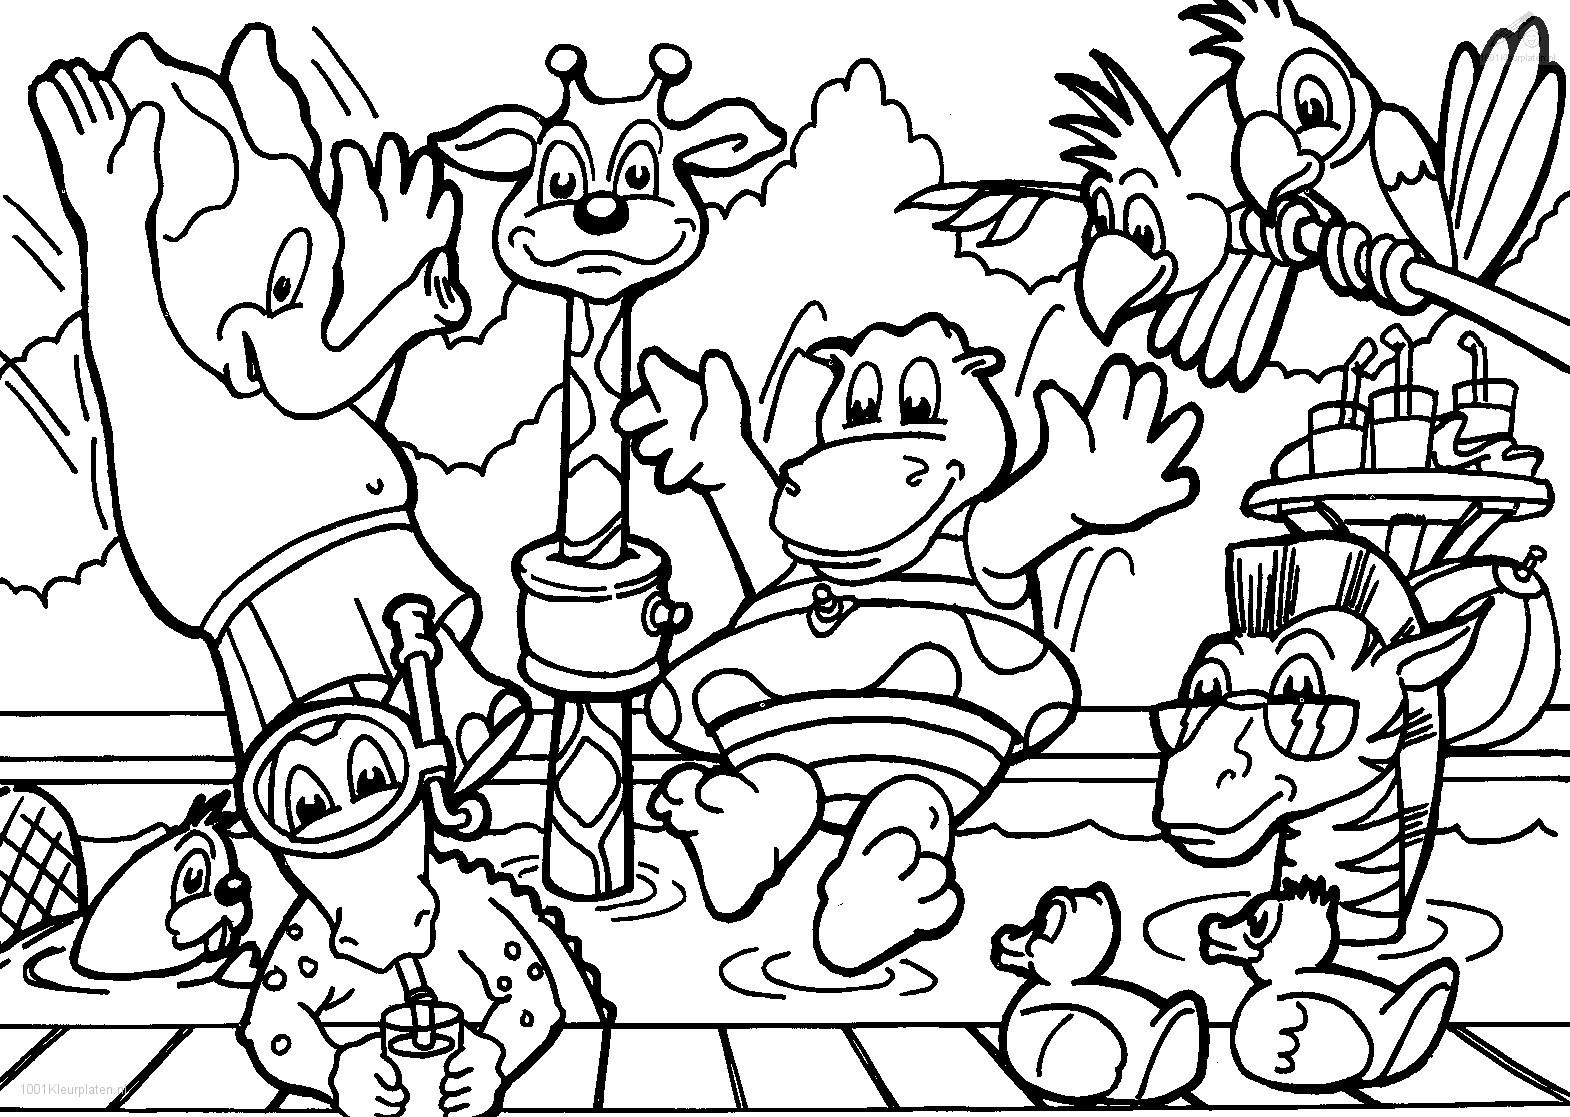 printable jungle animals coloring pages jungle coloring pages best coloring pages for kids jungle printable coloring pages animals